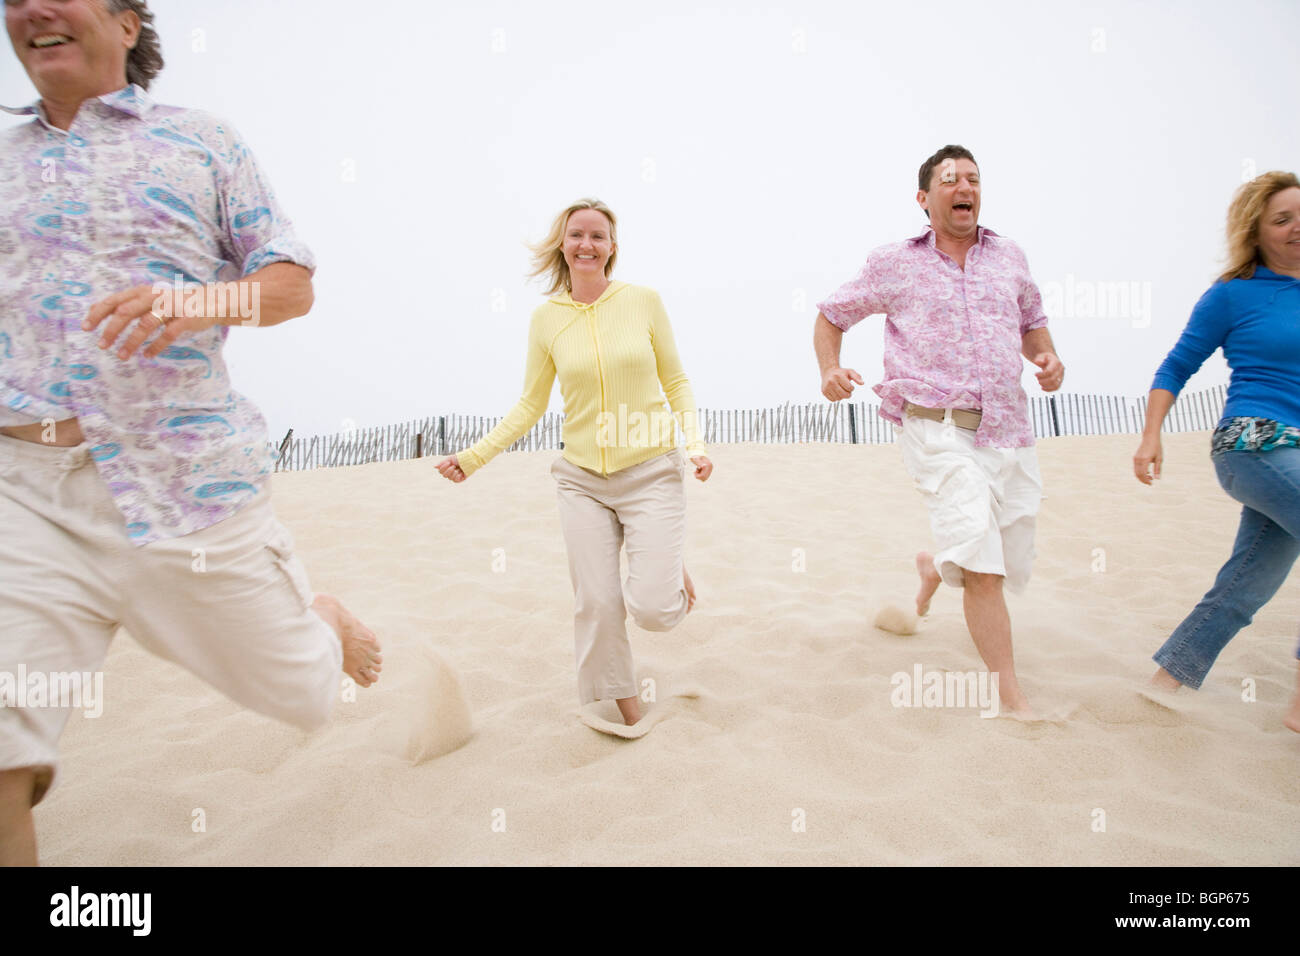 Two couples running on the beach - Stock Image